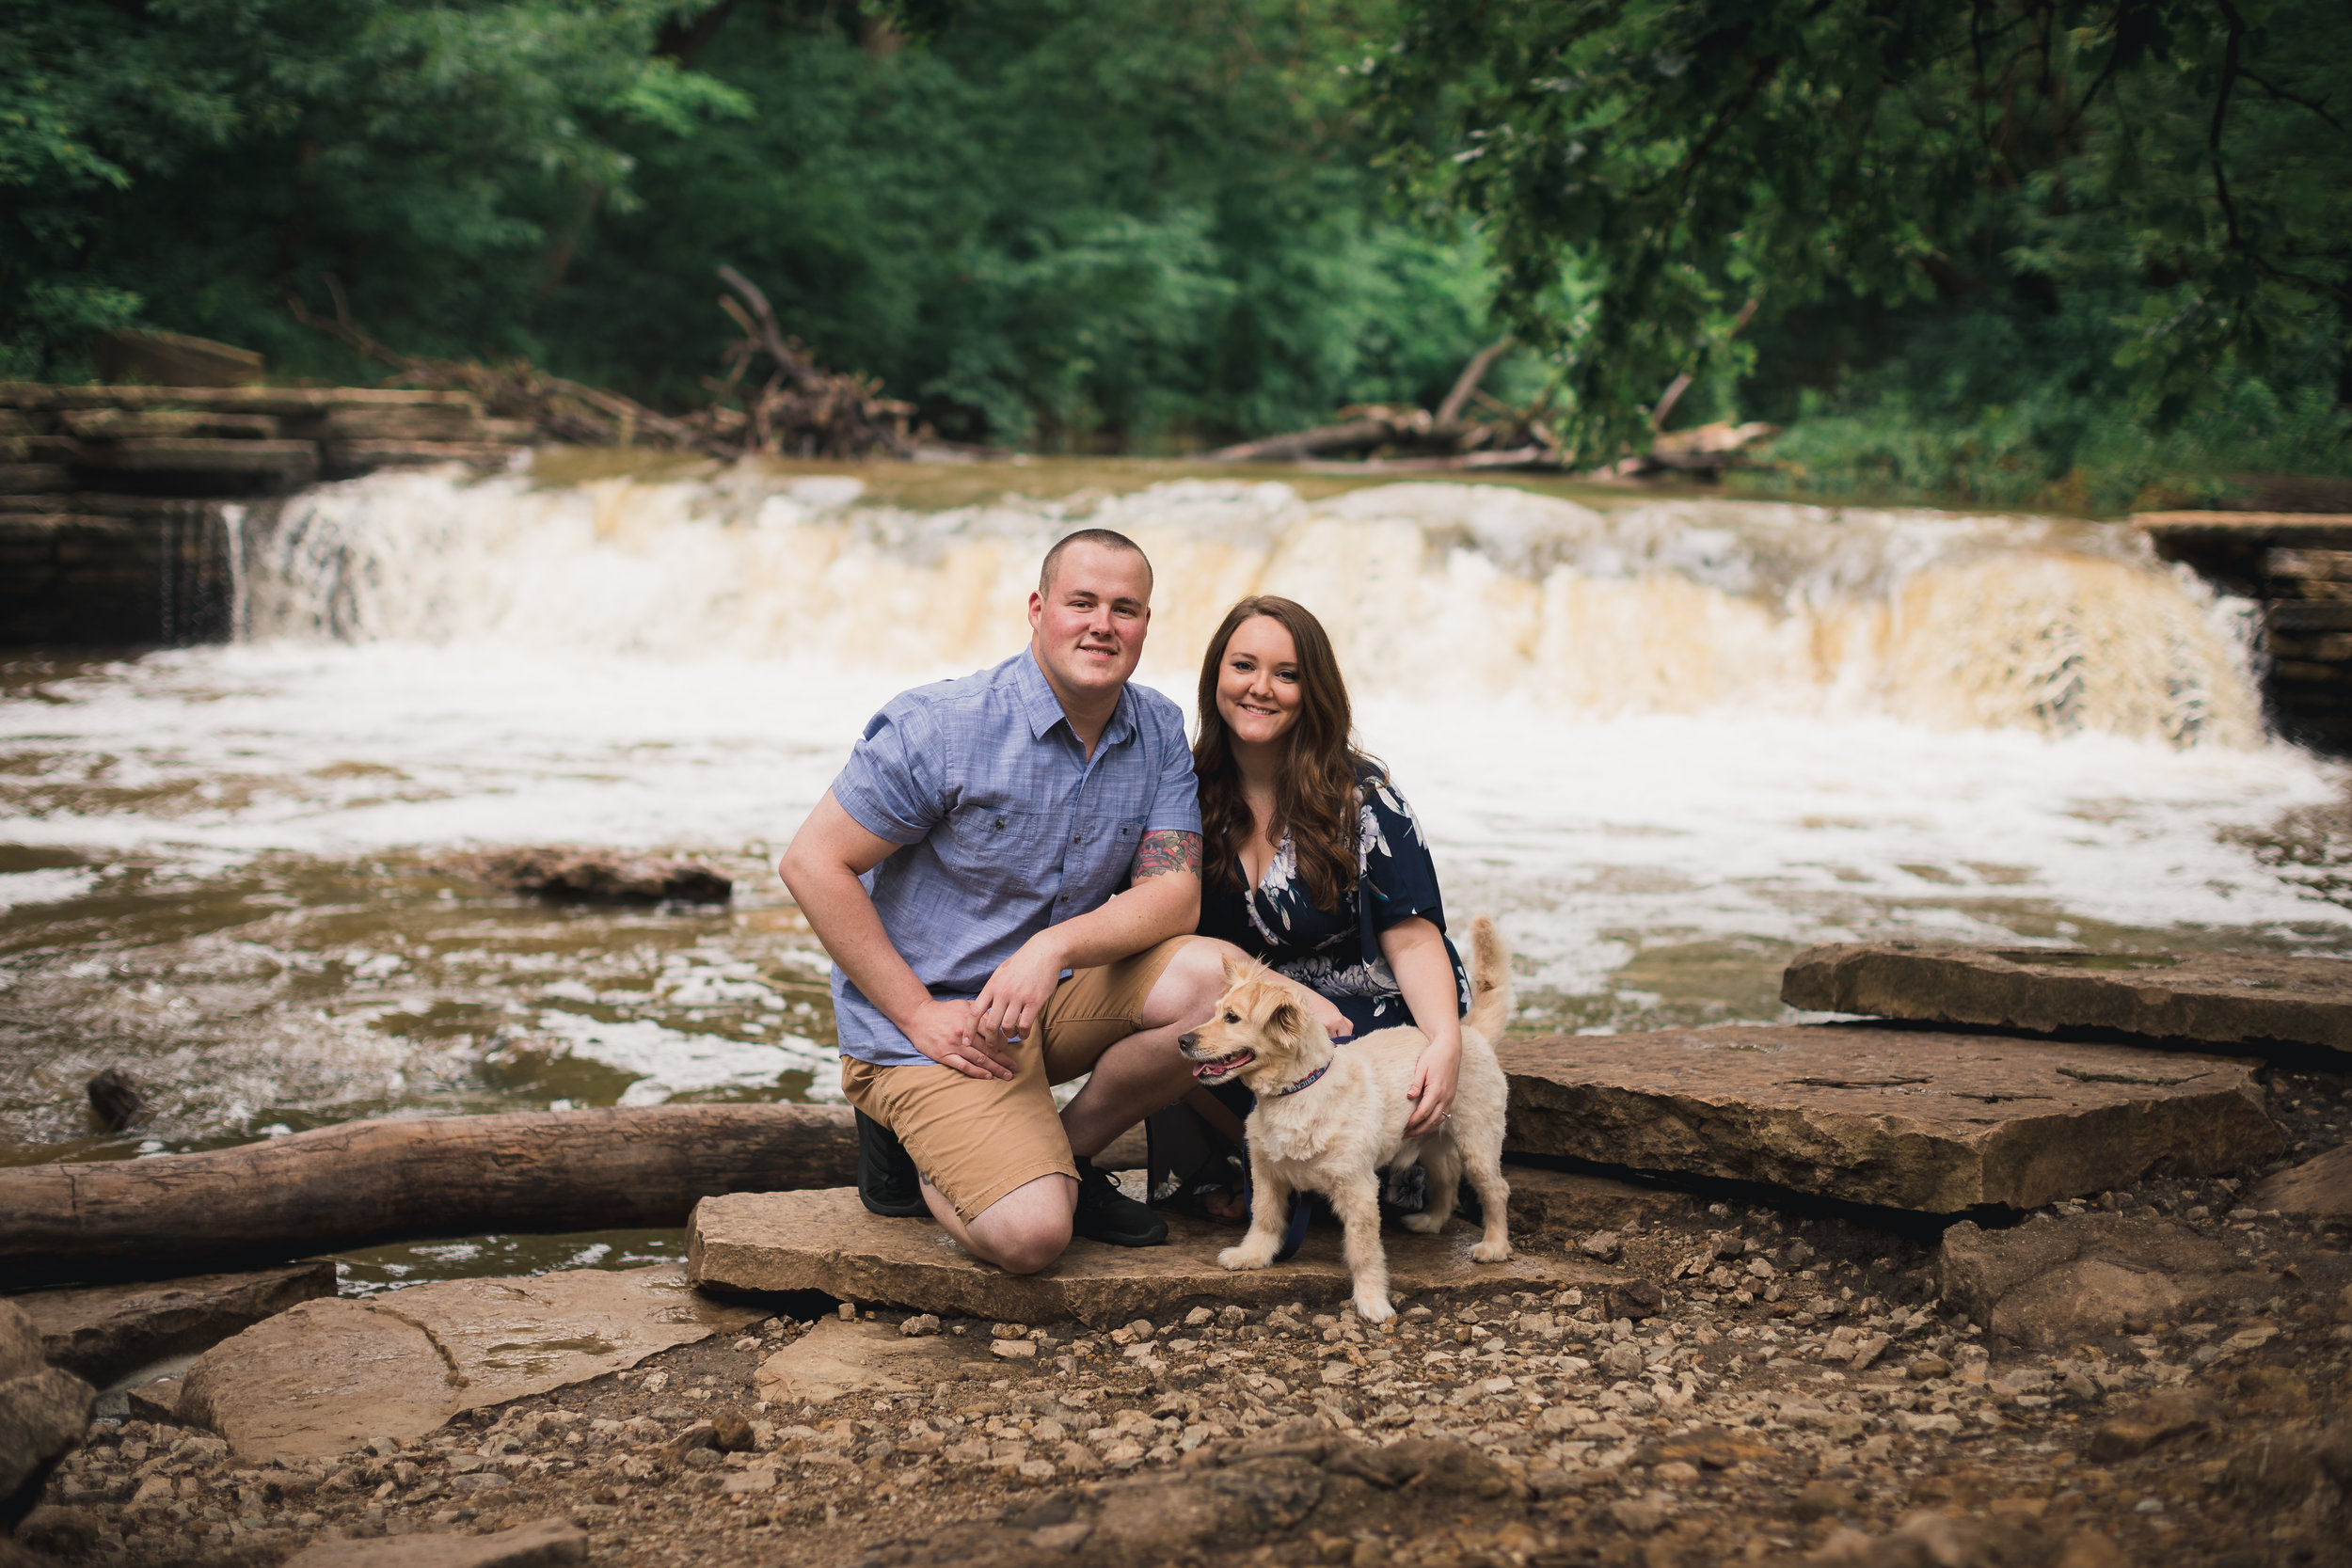 20180623_lauren_and_justin_engagement_06_5R3A0649.jpg